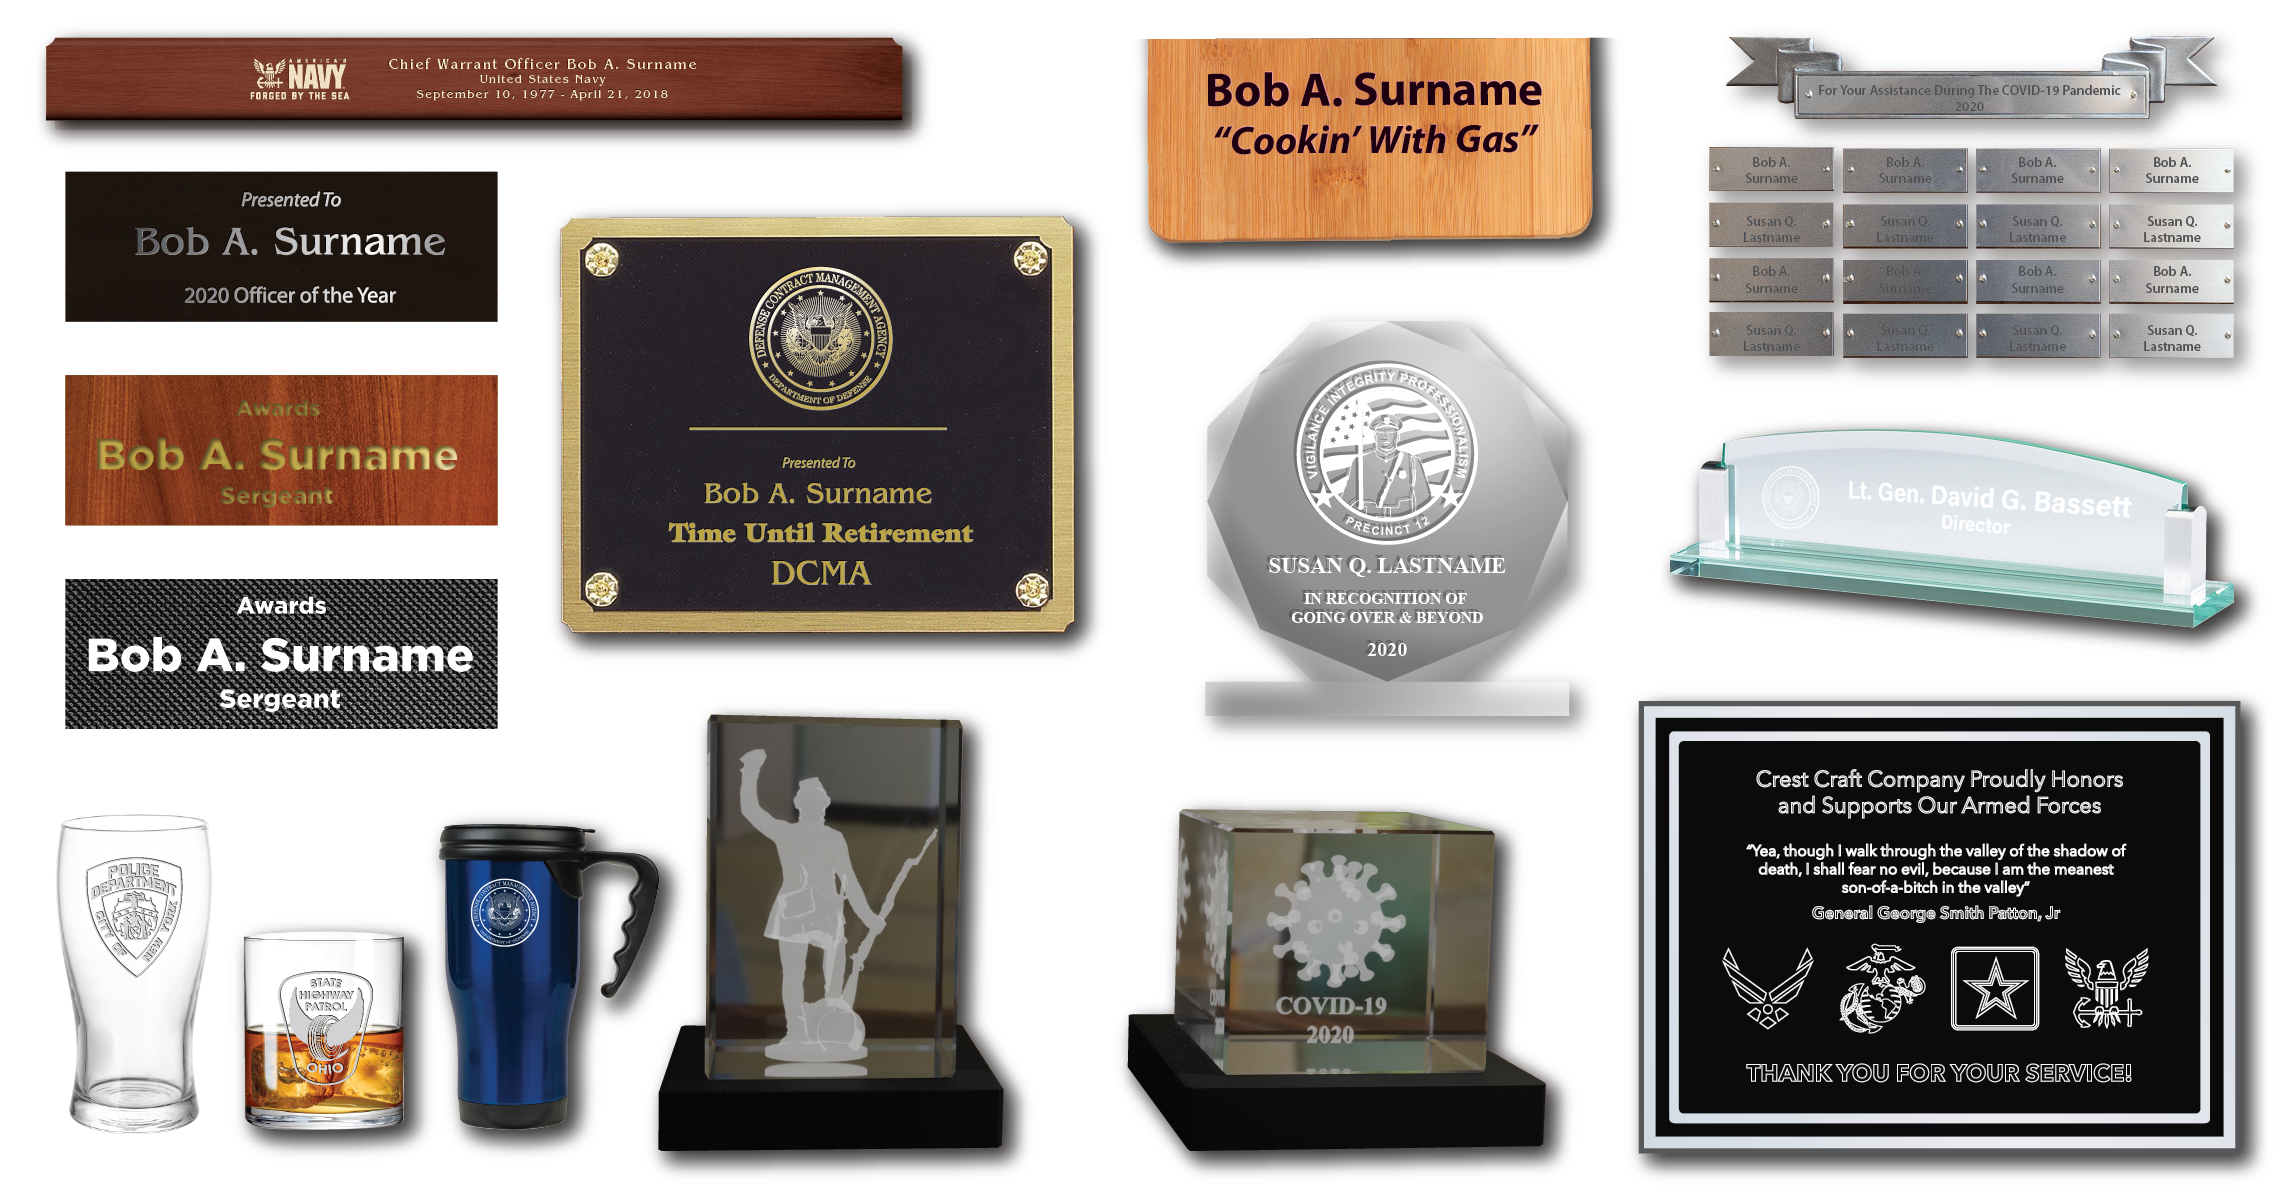 Laser and Rotary Engraved Product Examples by Crest Craft